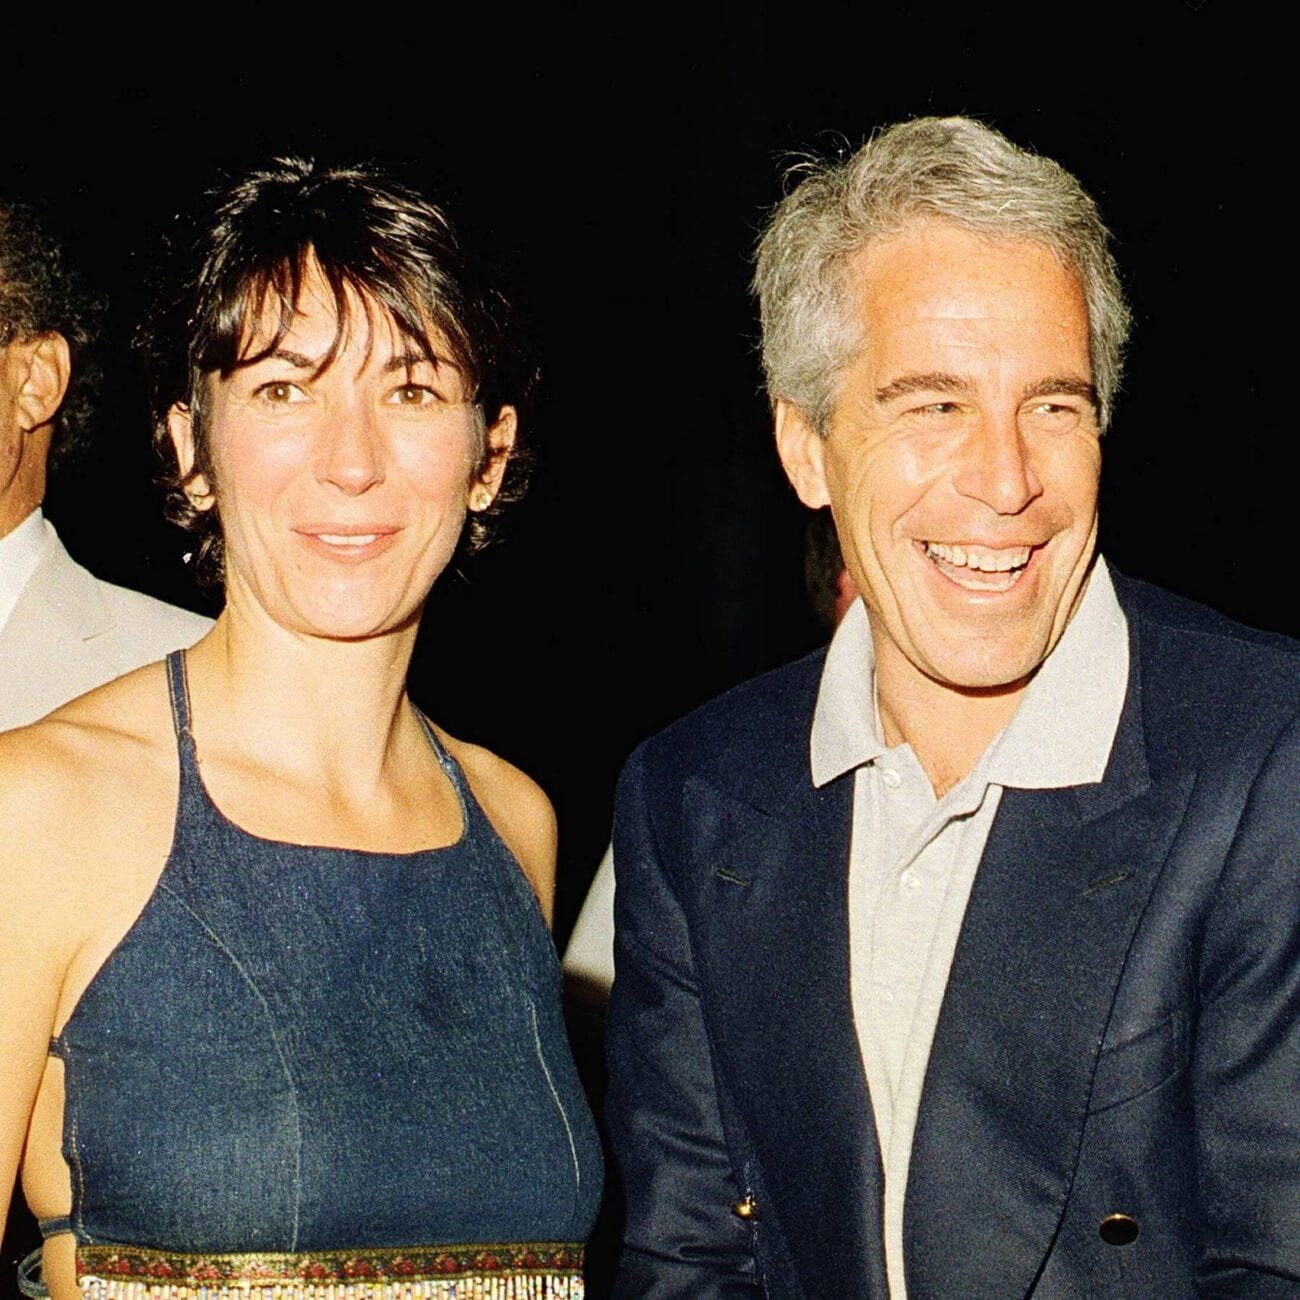 As more documents come out from Ghislaine Maxwell's 2015 lawsuit, it was revealed Maxwell denied knowing about Jeffrey Epstein and his illegal activities.